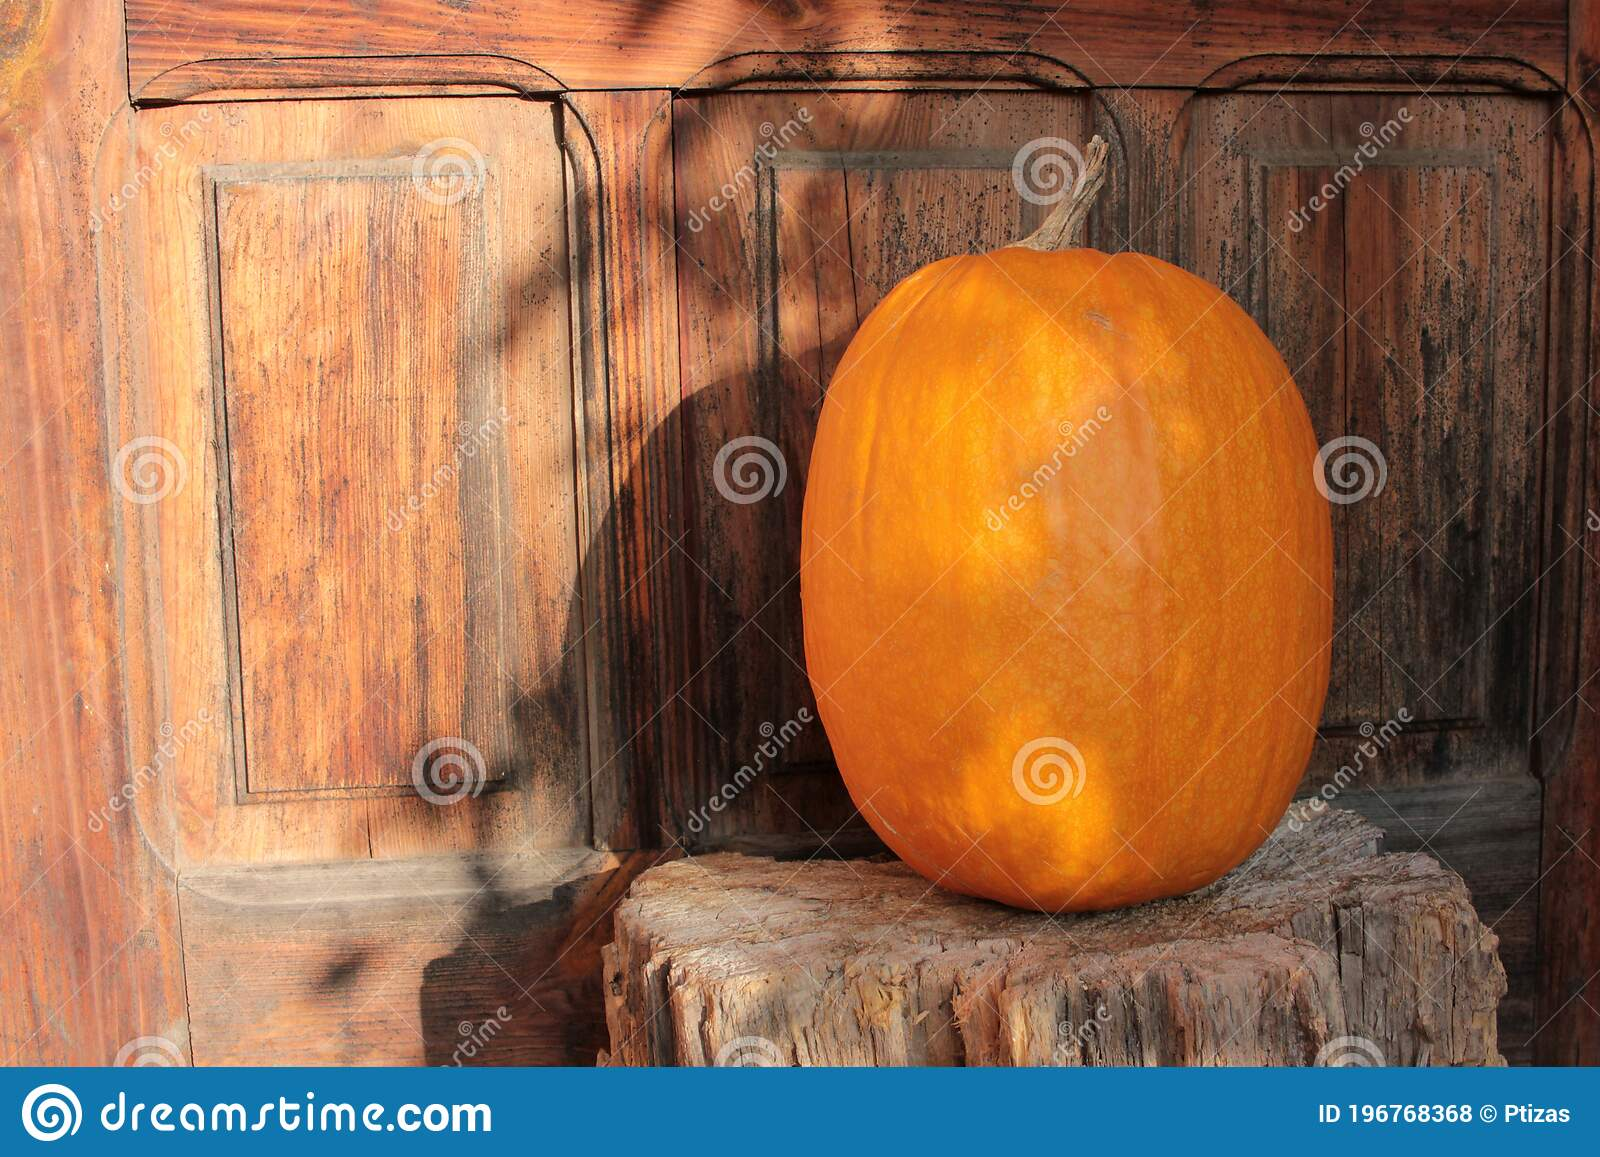 Pumpkin On The Porch On Wooden Door Background Halloween Outdoor Decor Stock Photo Image Of Bright Colorful 196768368